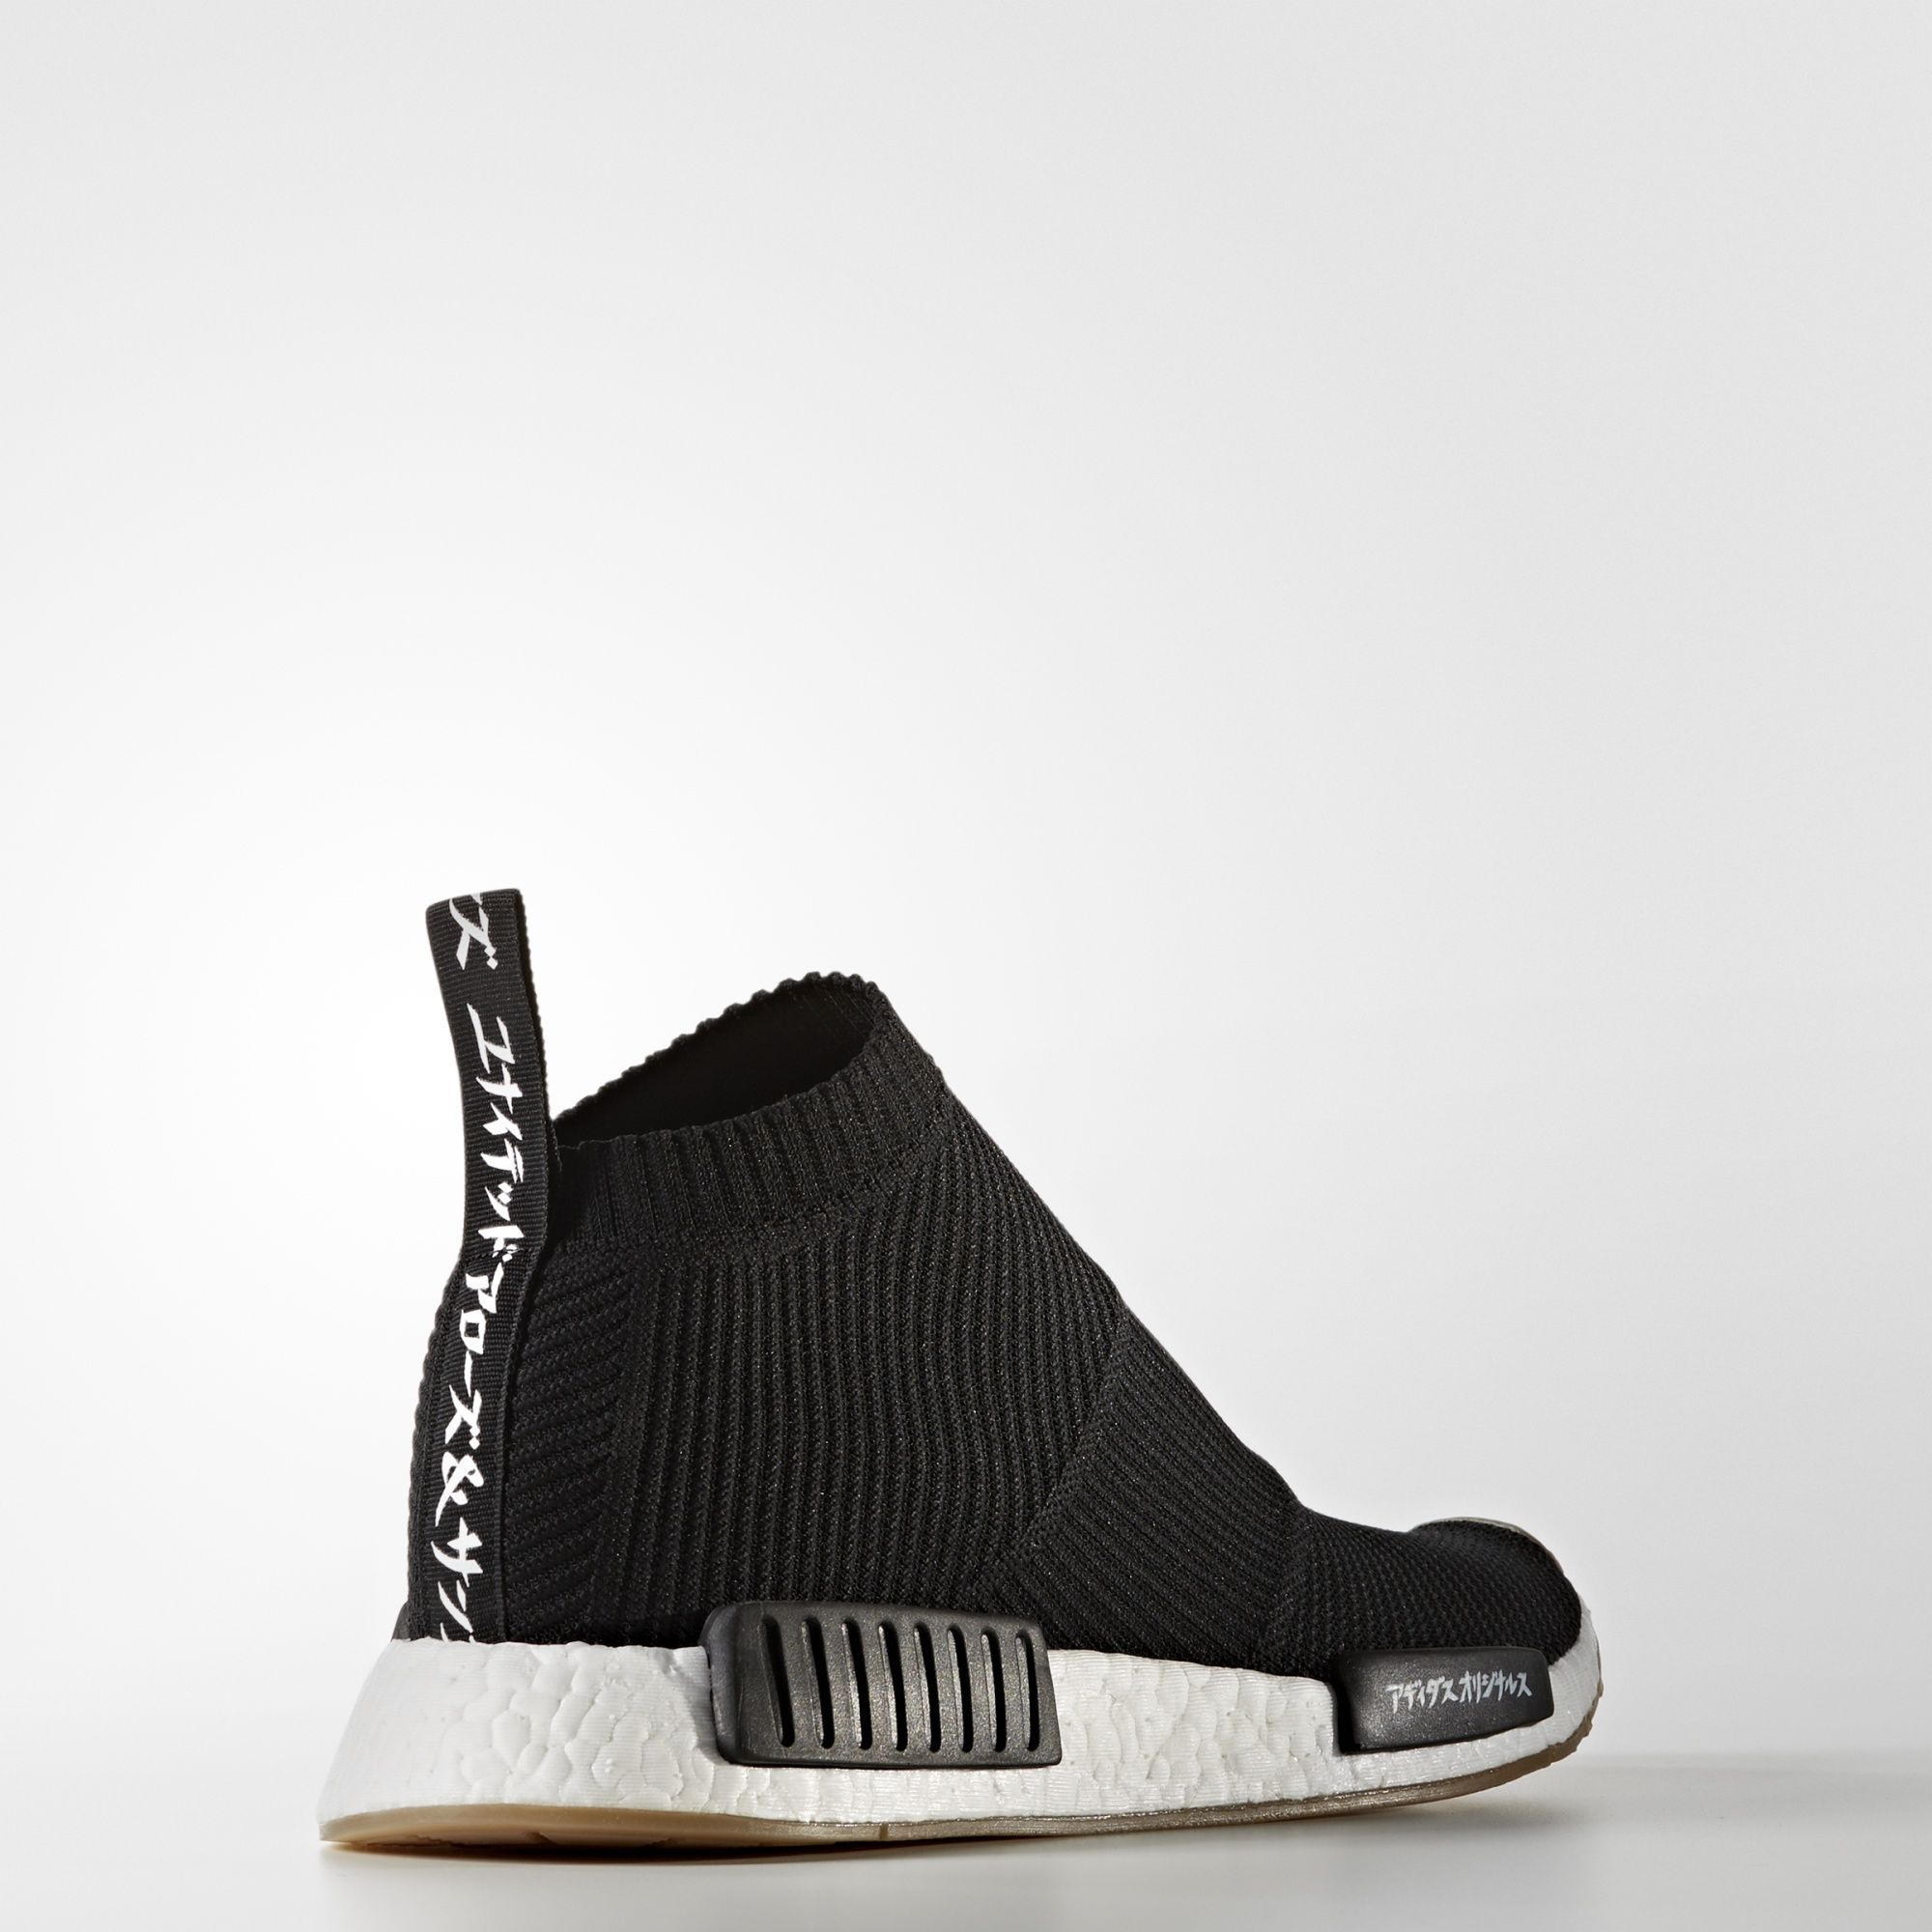 UASons x adidas NMD CS1 Black CG3604 4